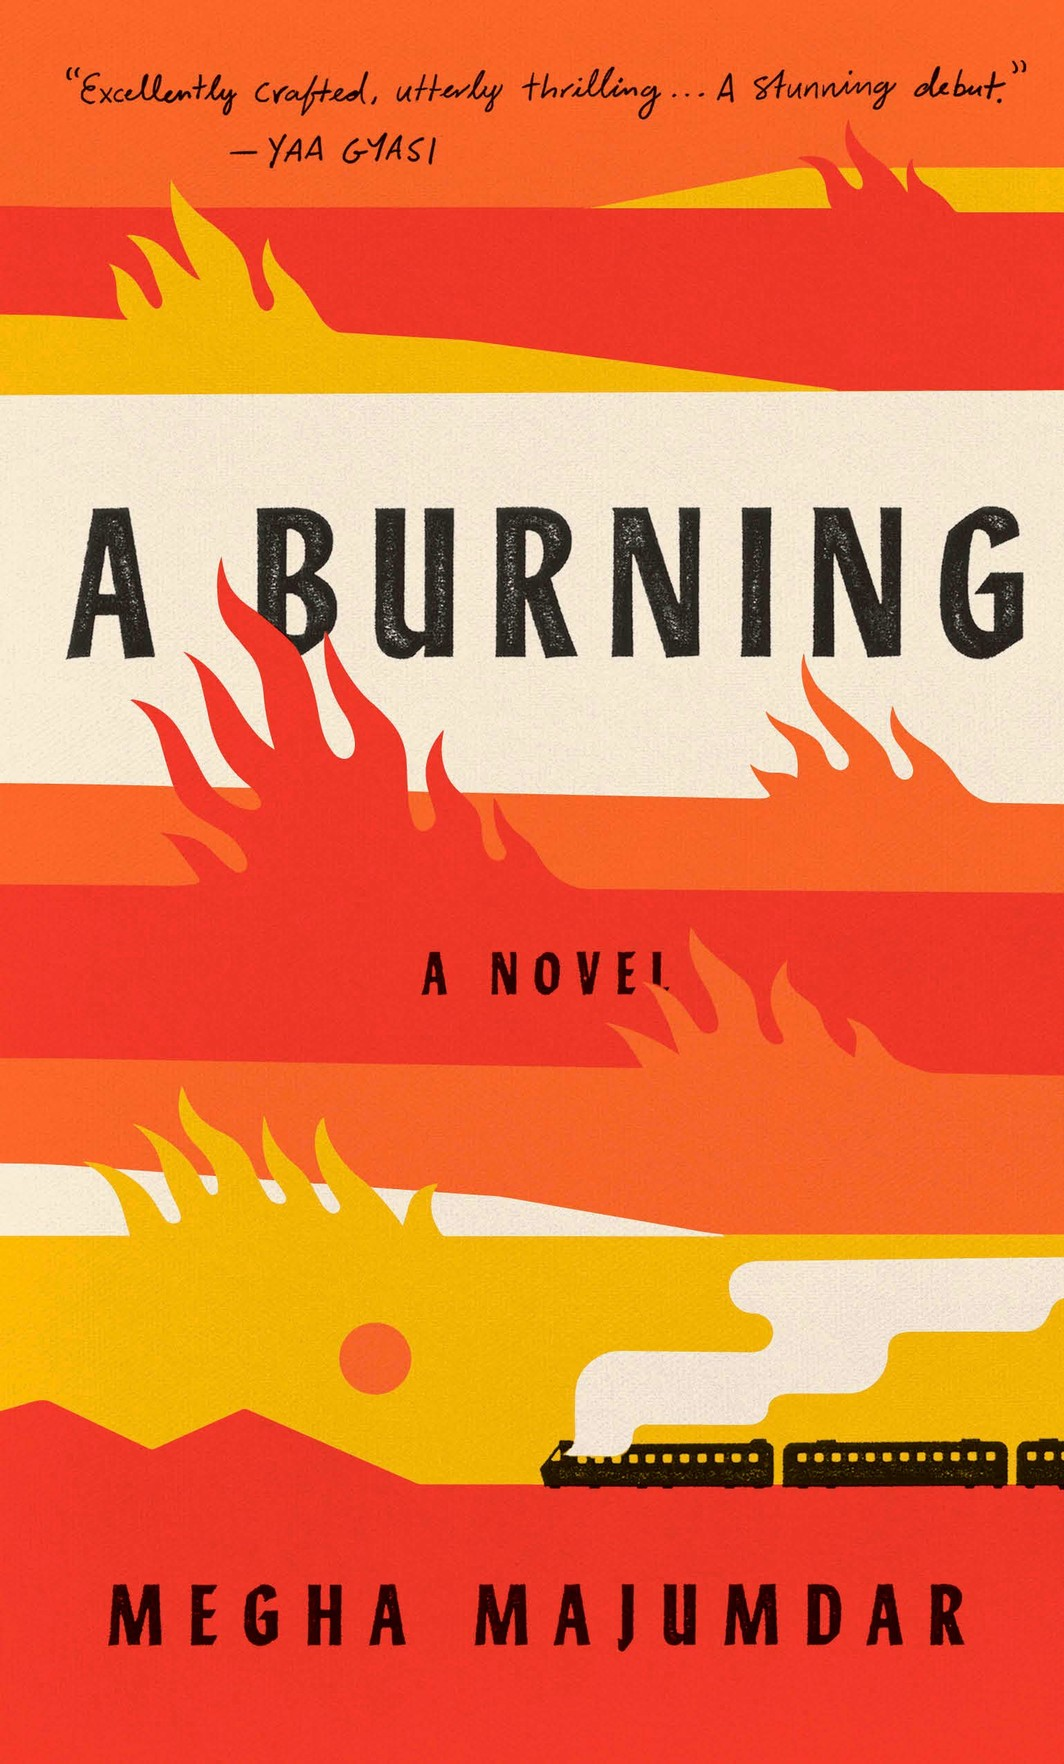 The cover of A BURNING